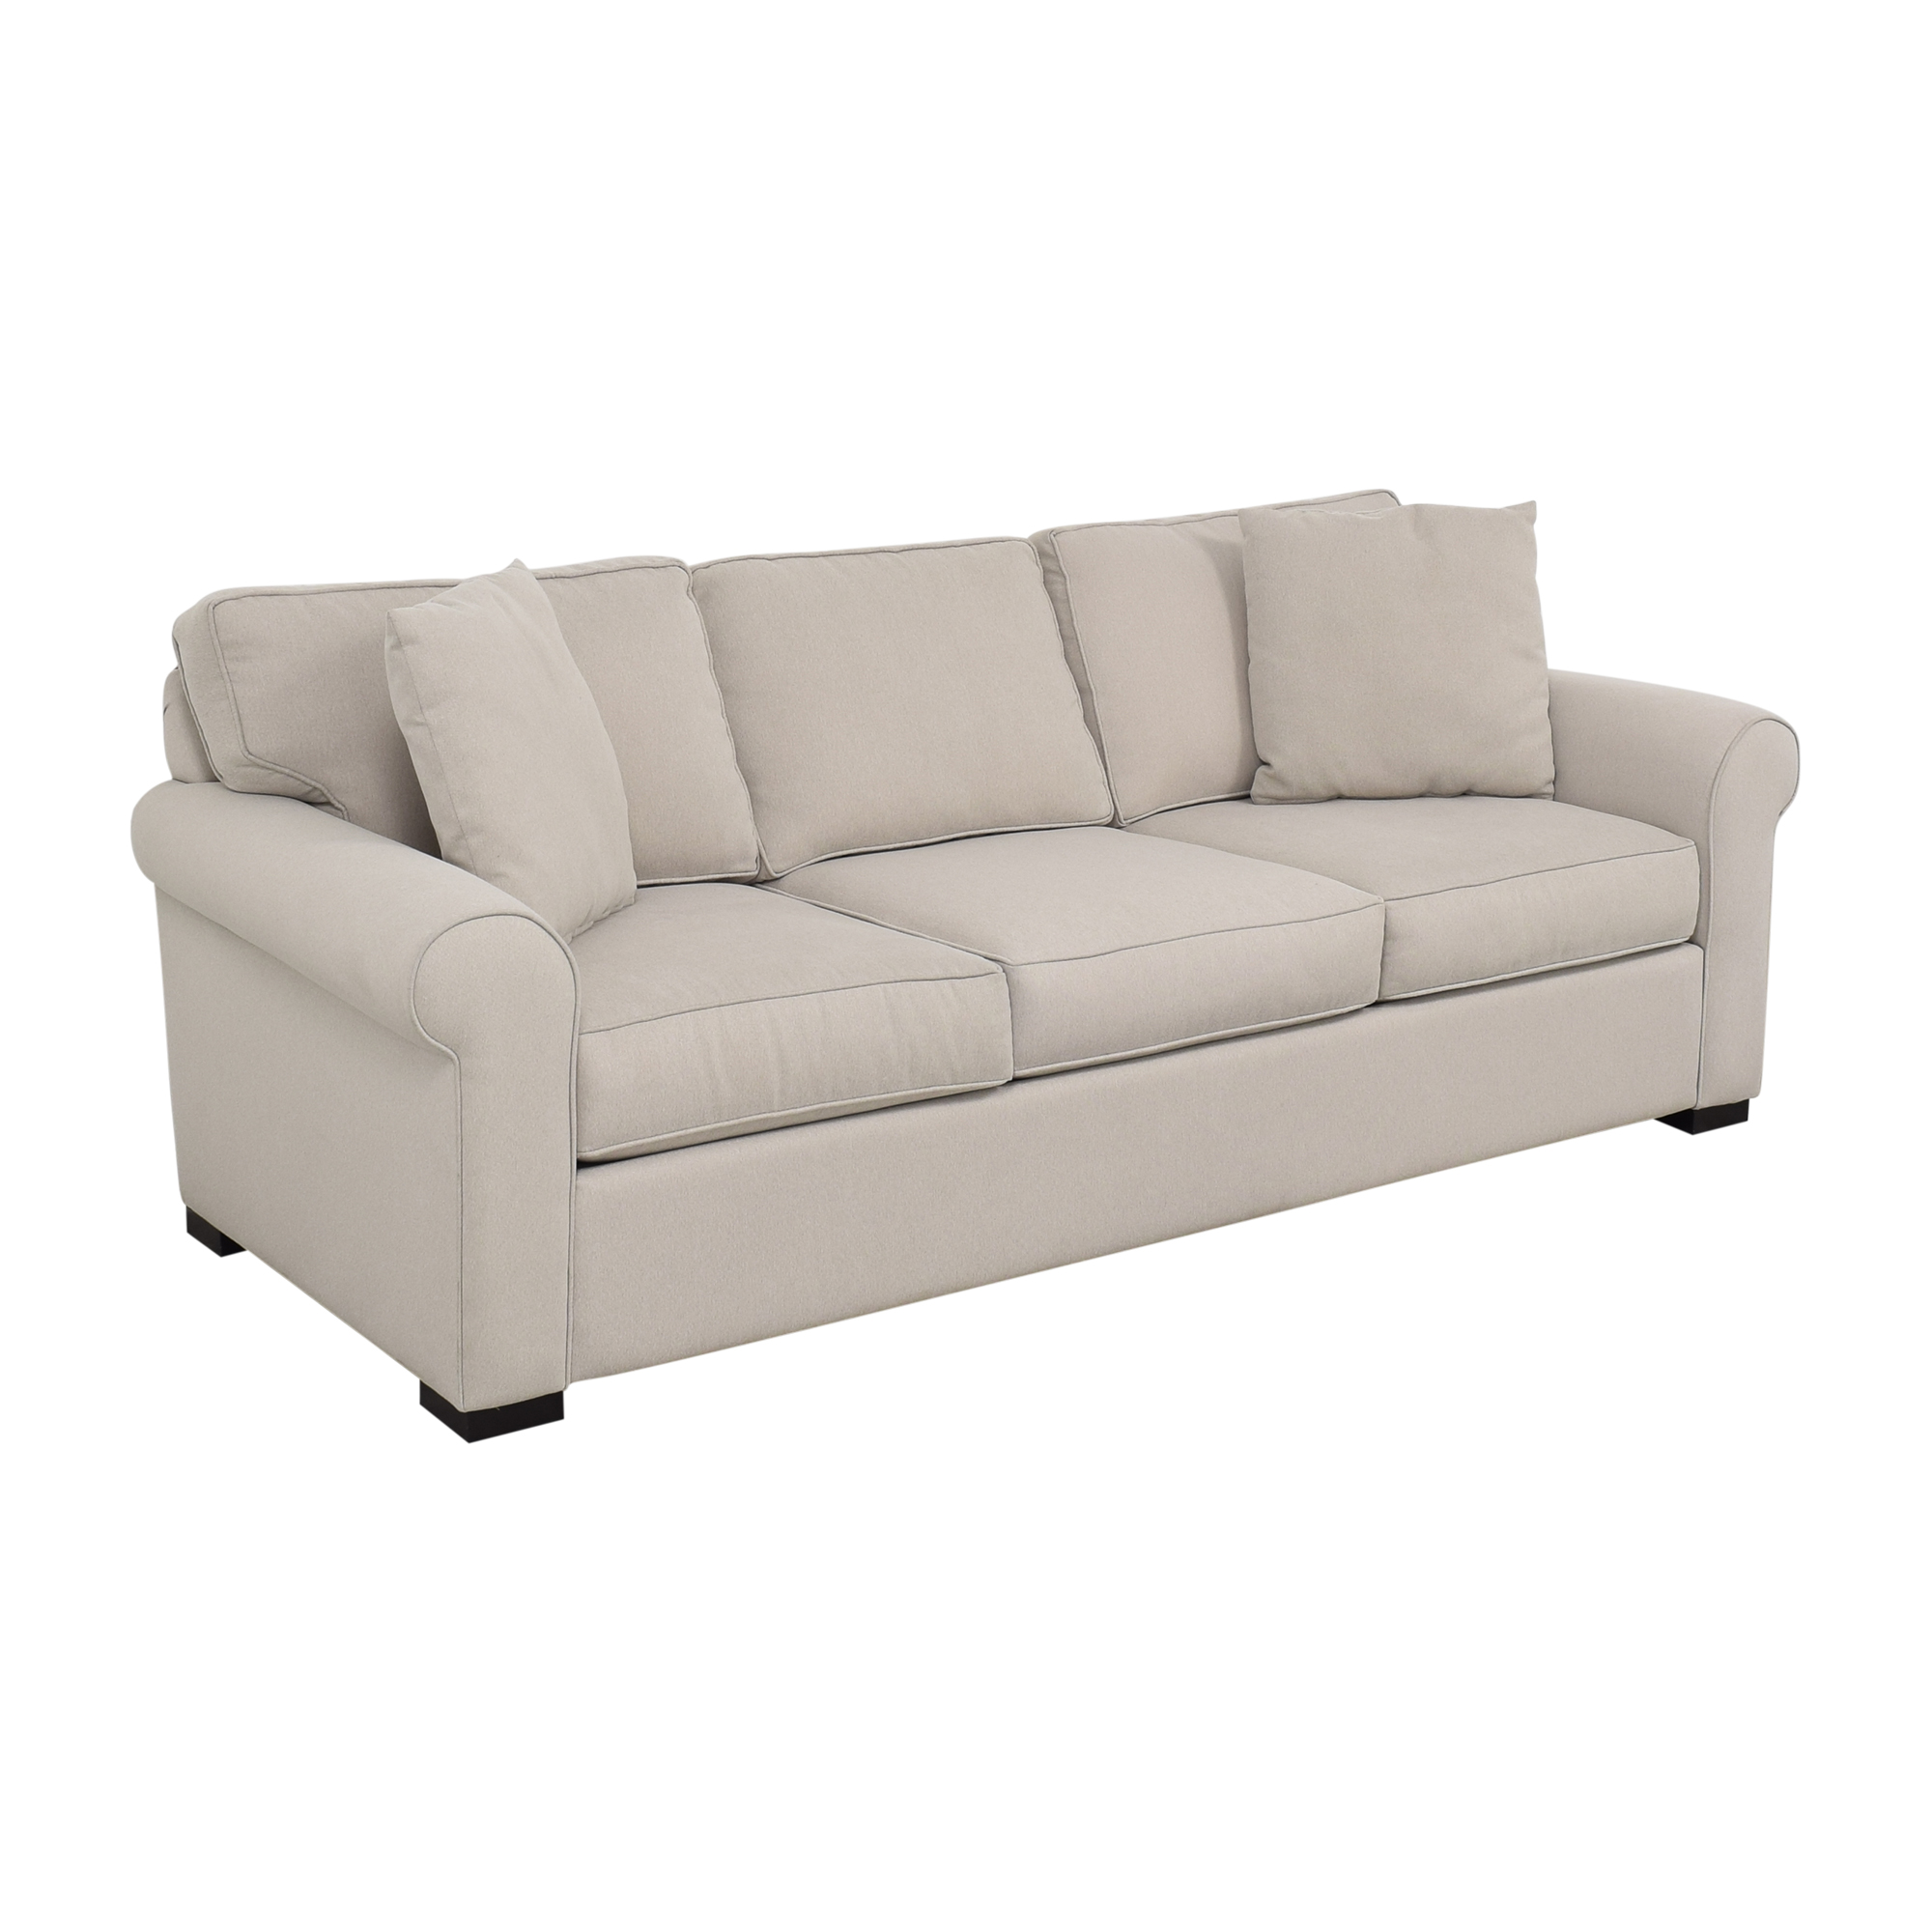 buy Macy's Upholstered Sofa Macy's Sofas